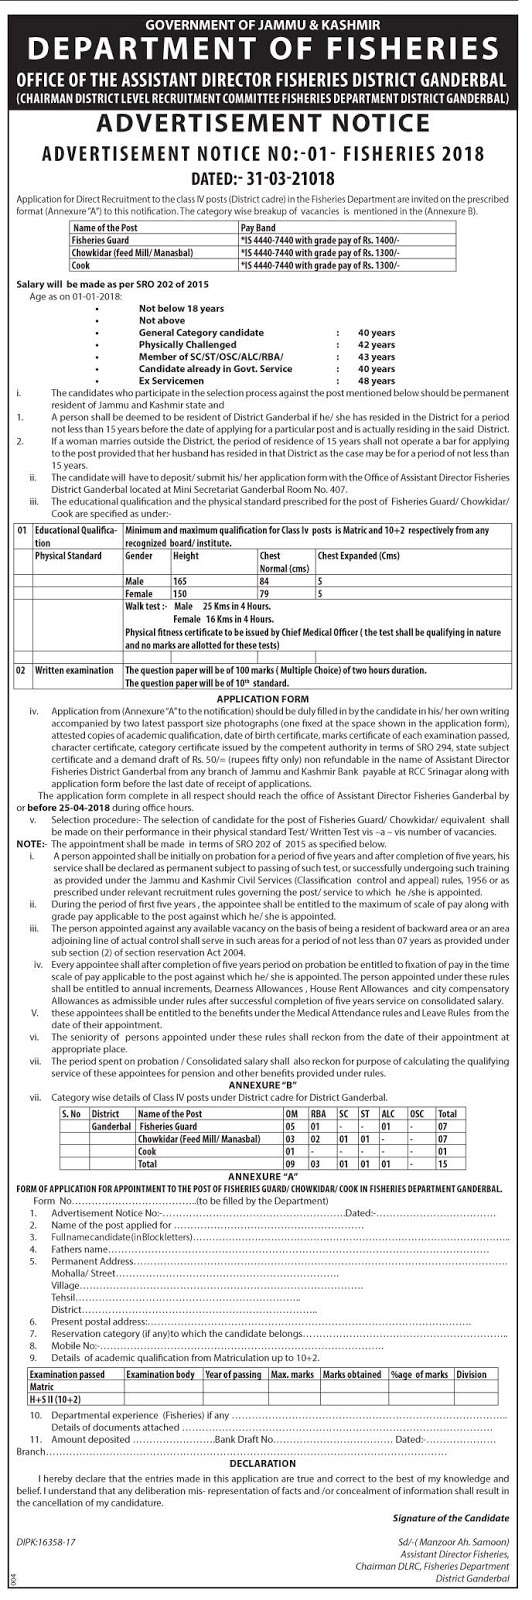 Department of Fisheries Ganderbal Recruitment 2018 for 15 Class IV Posts